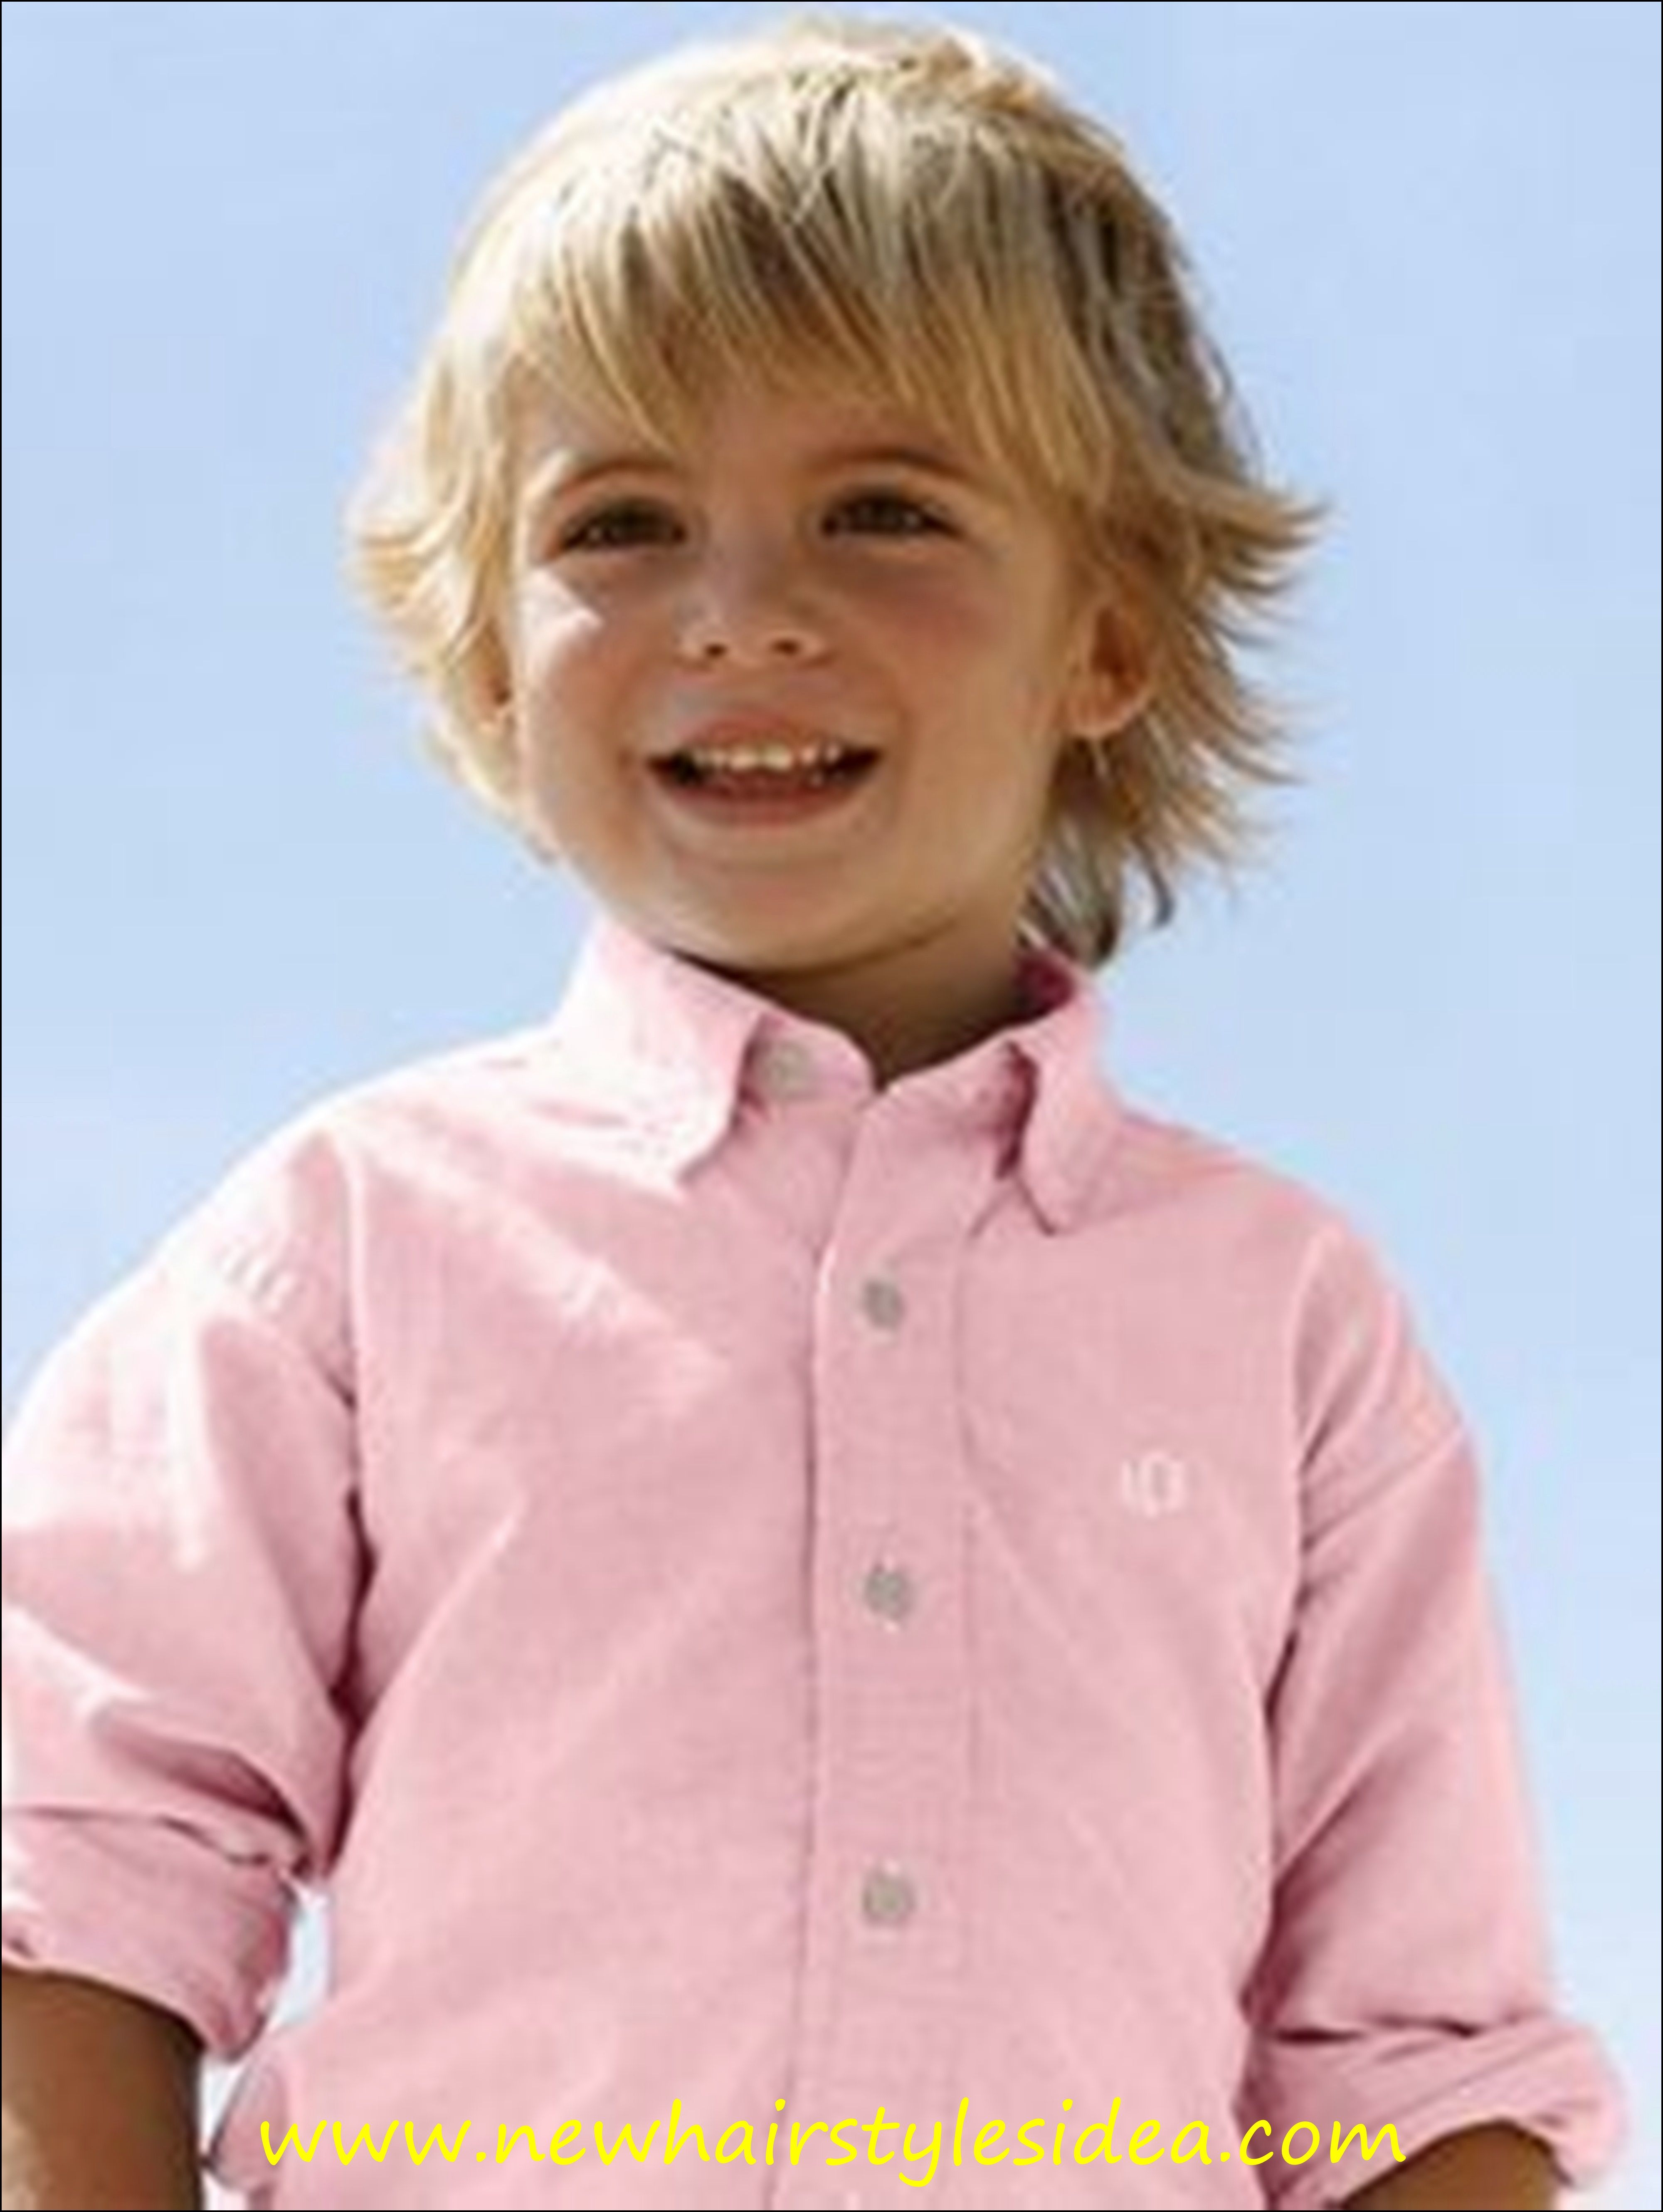 boys long hairstyles - bing images | hair and style | little